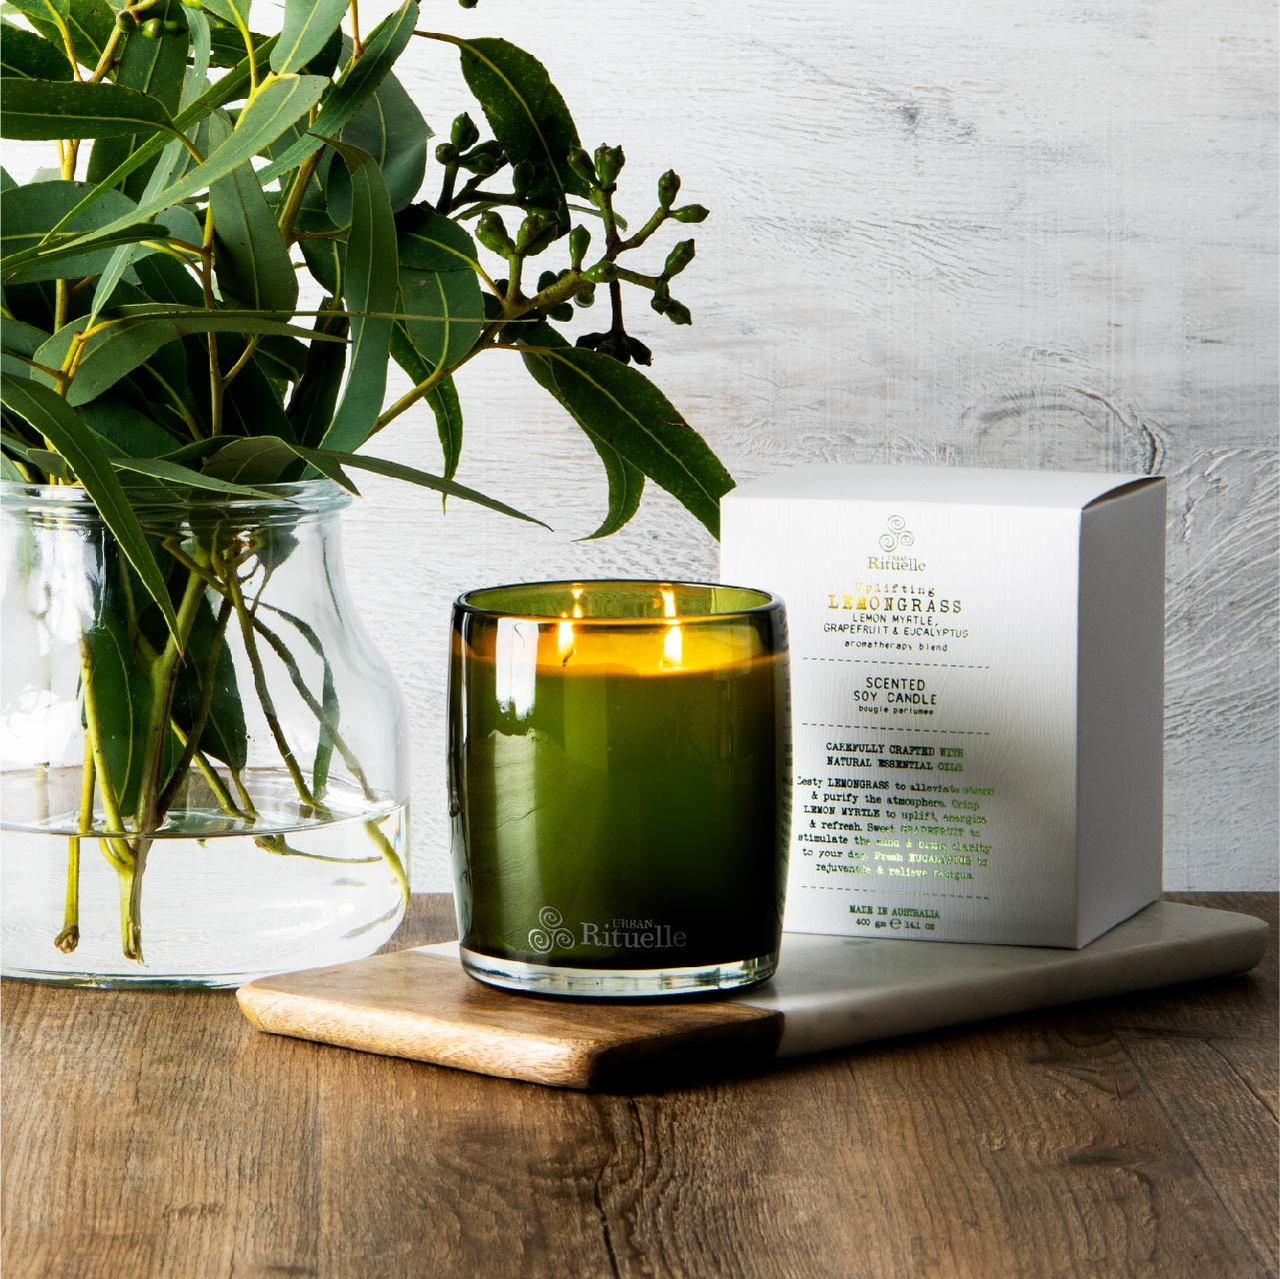 Flourish Organics - Scented Soy Candle - Lemongrass  - Urban Rituelle